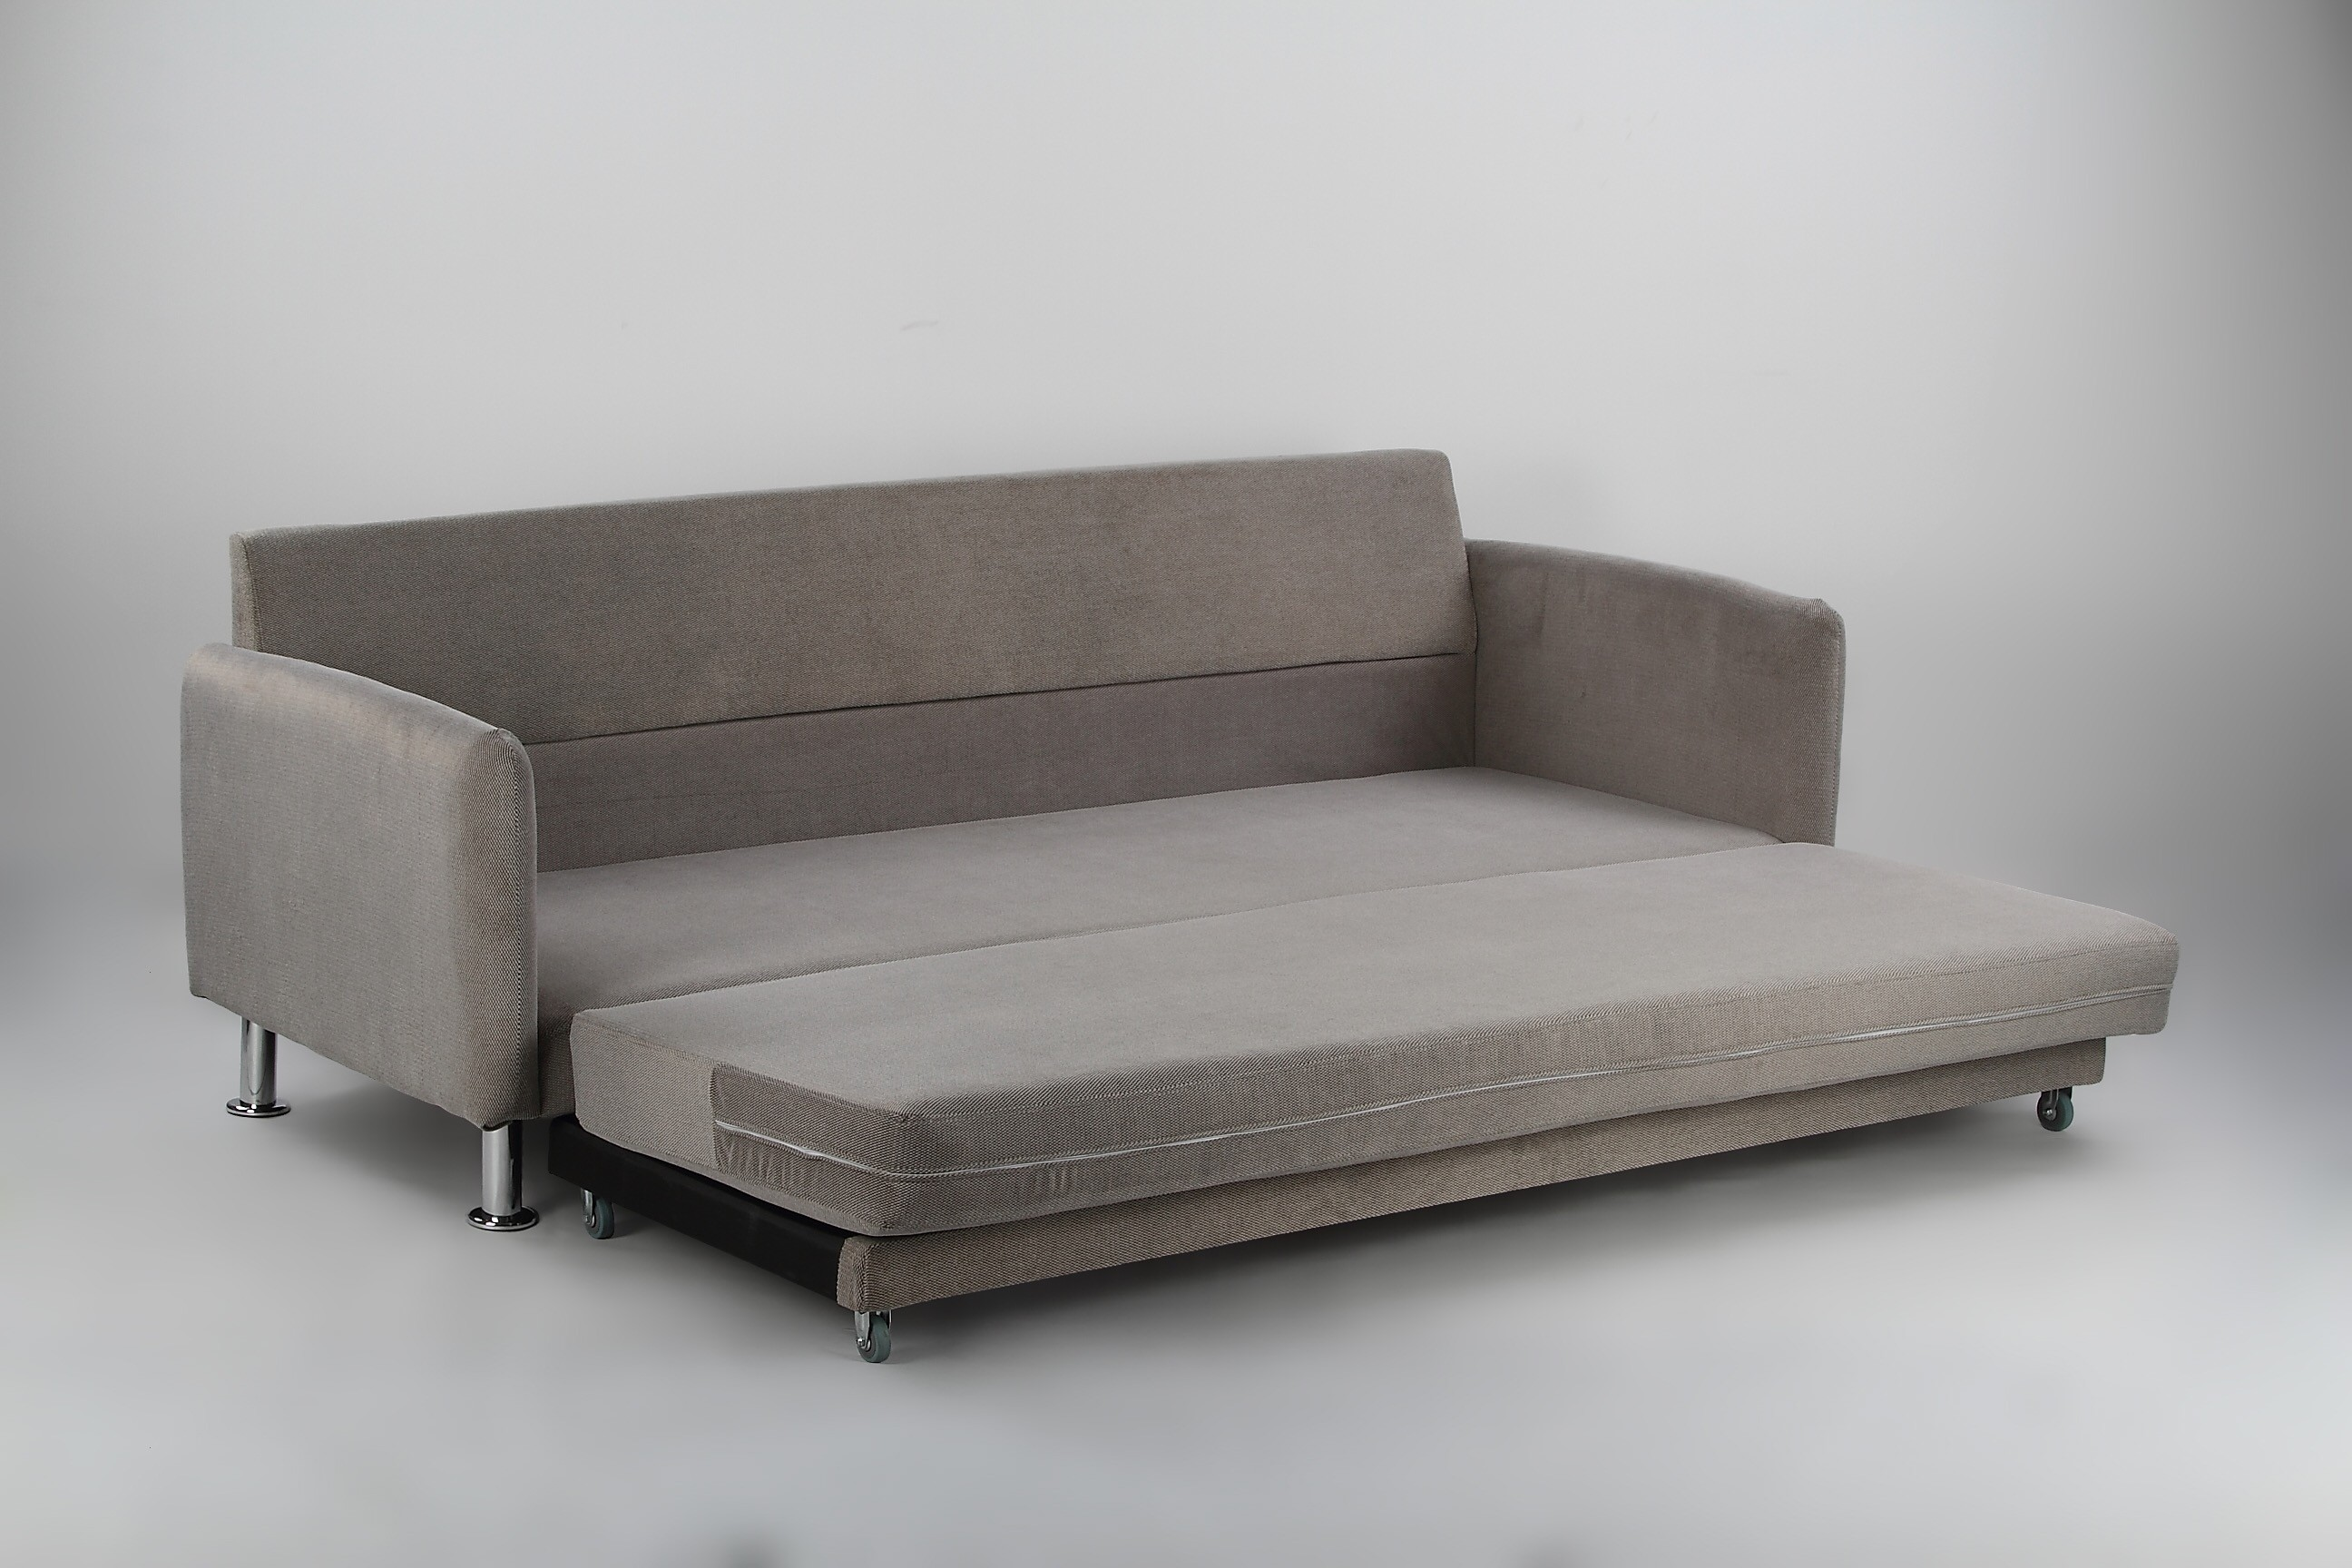 sofa beds argos co uk sleeper online with free shipping the bed company home mille 2 seater fabric